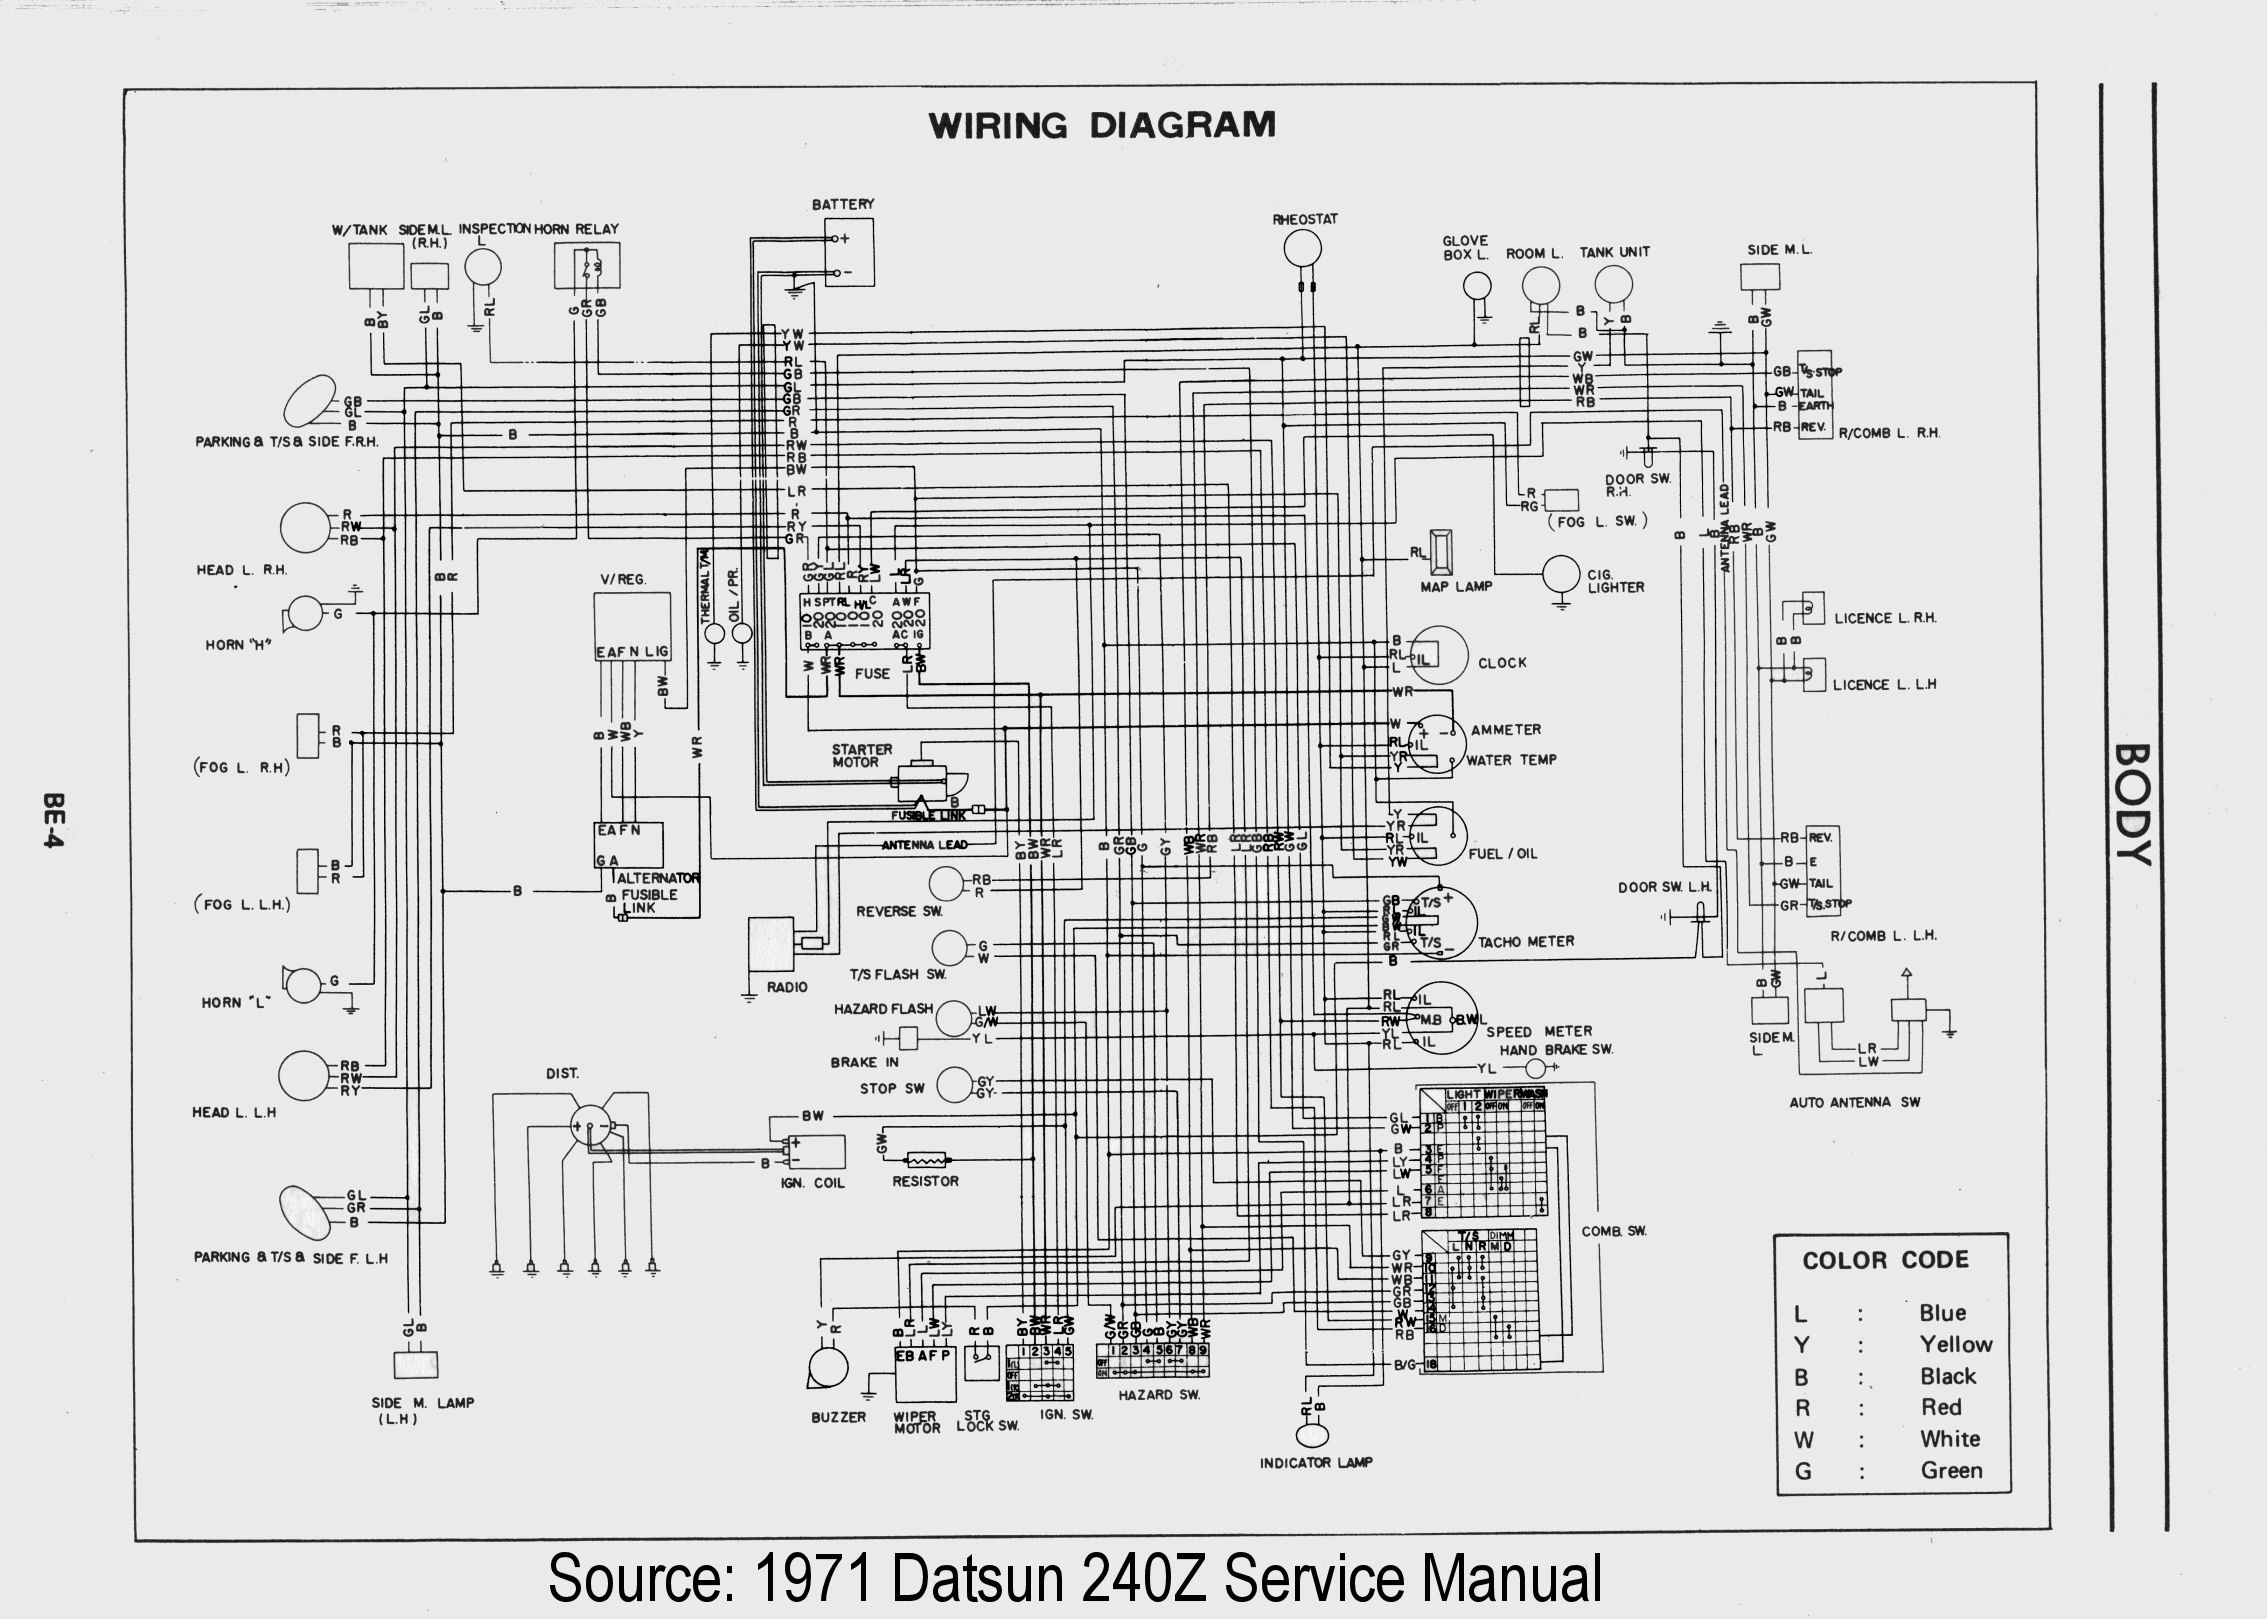 Wiring Diagram HiRes 2 generic wiring troubleshooting checklist woodworkerb datsun wiring harness at soozxer.org